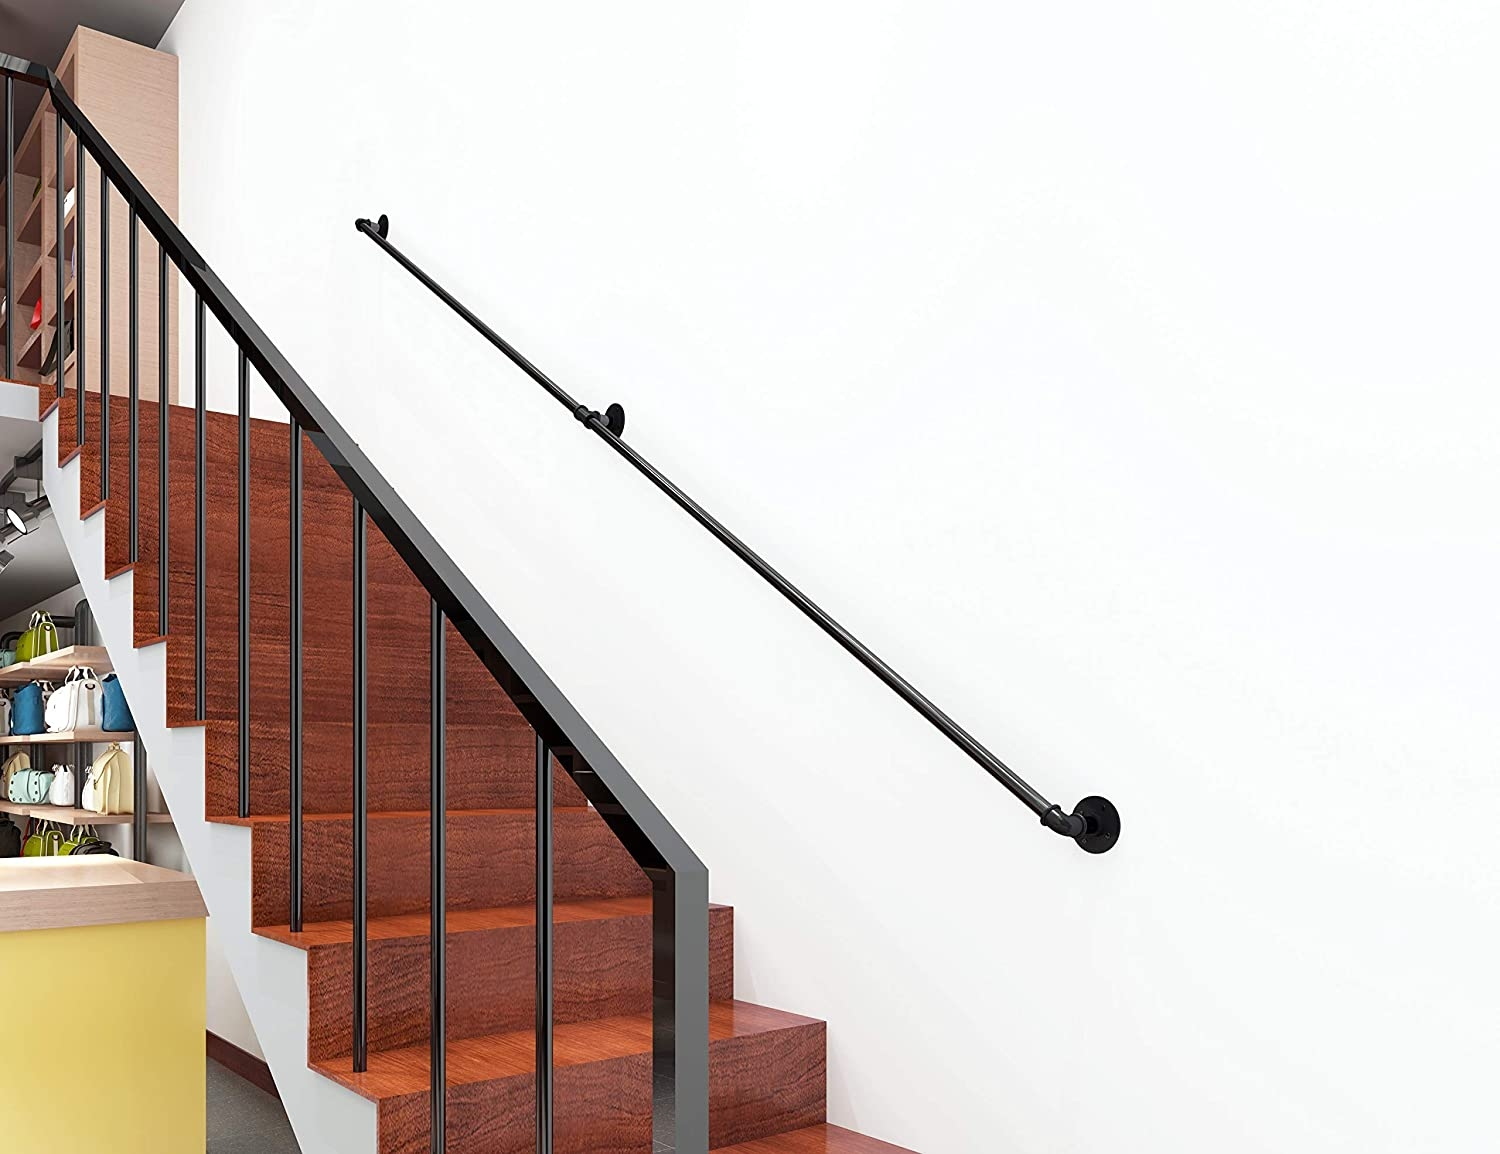 Building Supplies Diyhd 7 6Ft Black Iron Pipe Interior Wall Mount | Black Iron Pipe Handrail | Cast Iron | Horizontal Pipe | Paint Pipe | Stair Outdoor Decatur | Railing Aluminium Pipe